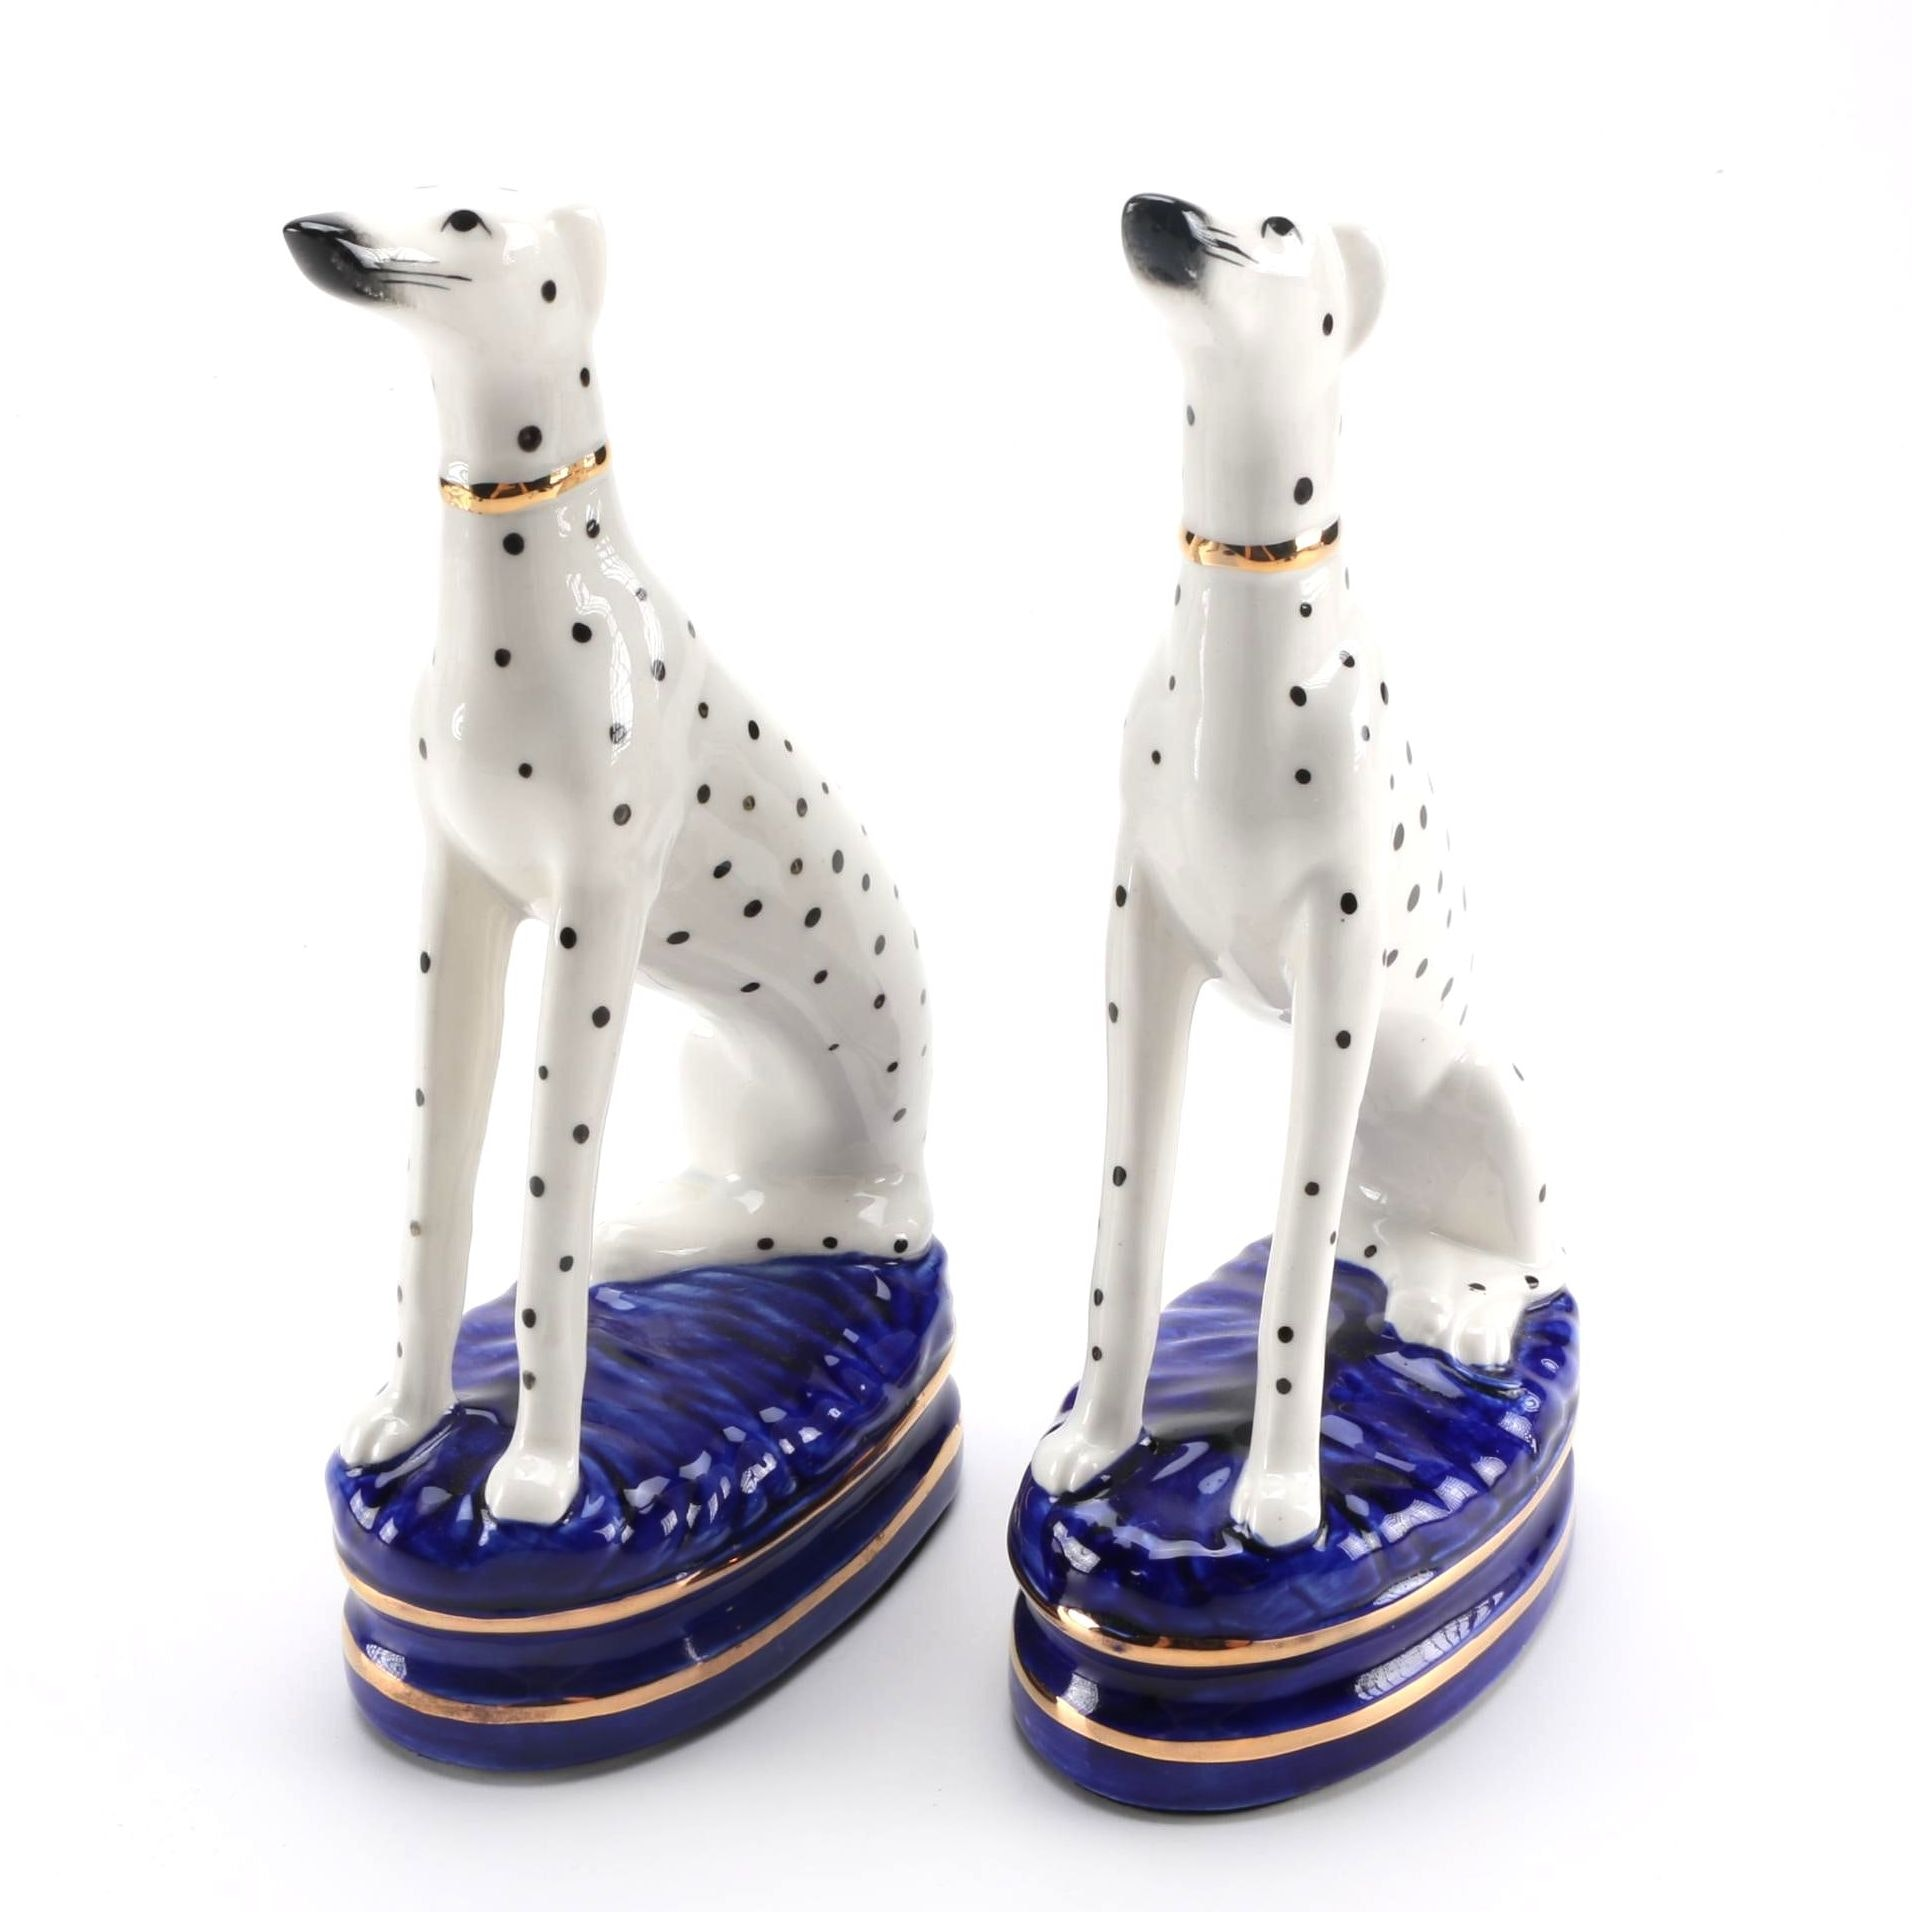 Pair of Dalmatian Bookend Figurines After Fitz and Floyd